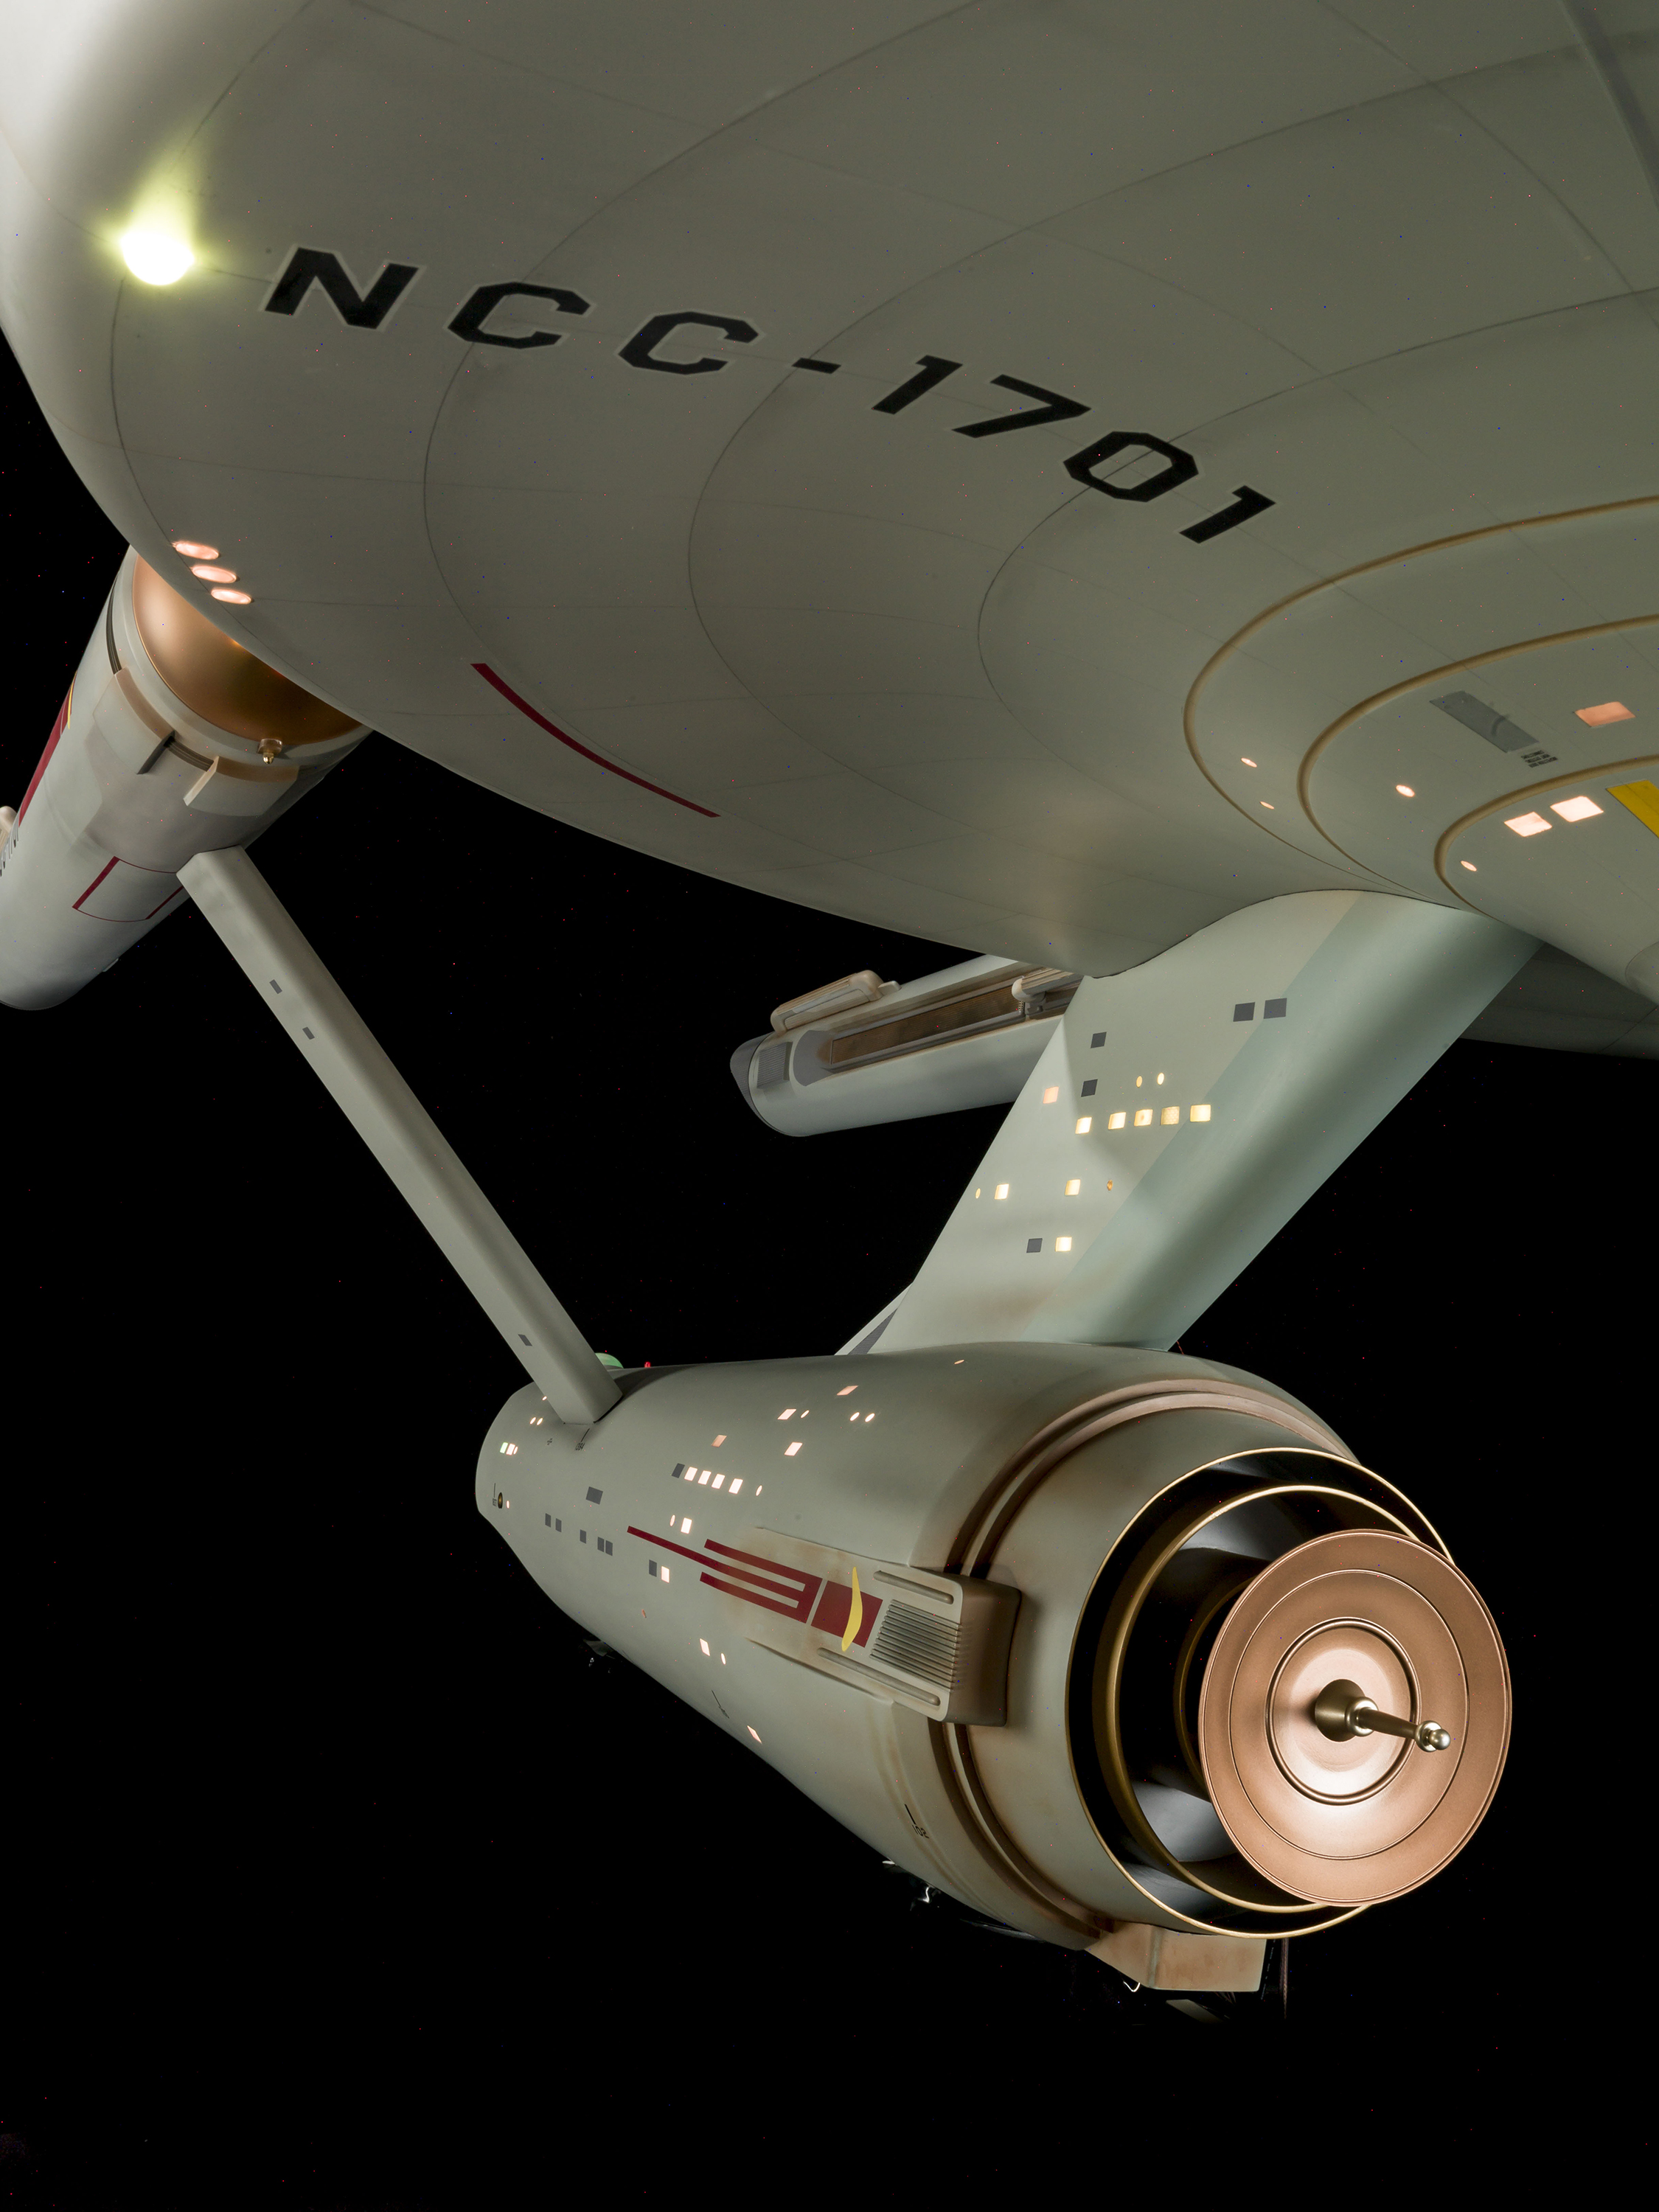 Enterprise against a black background.